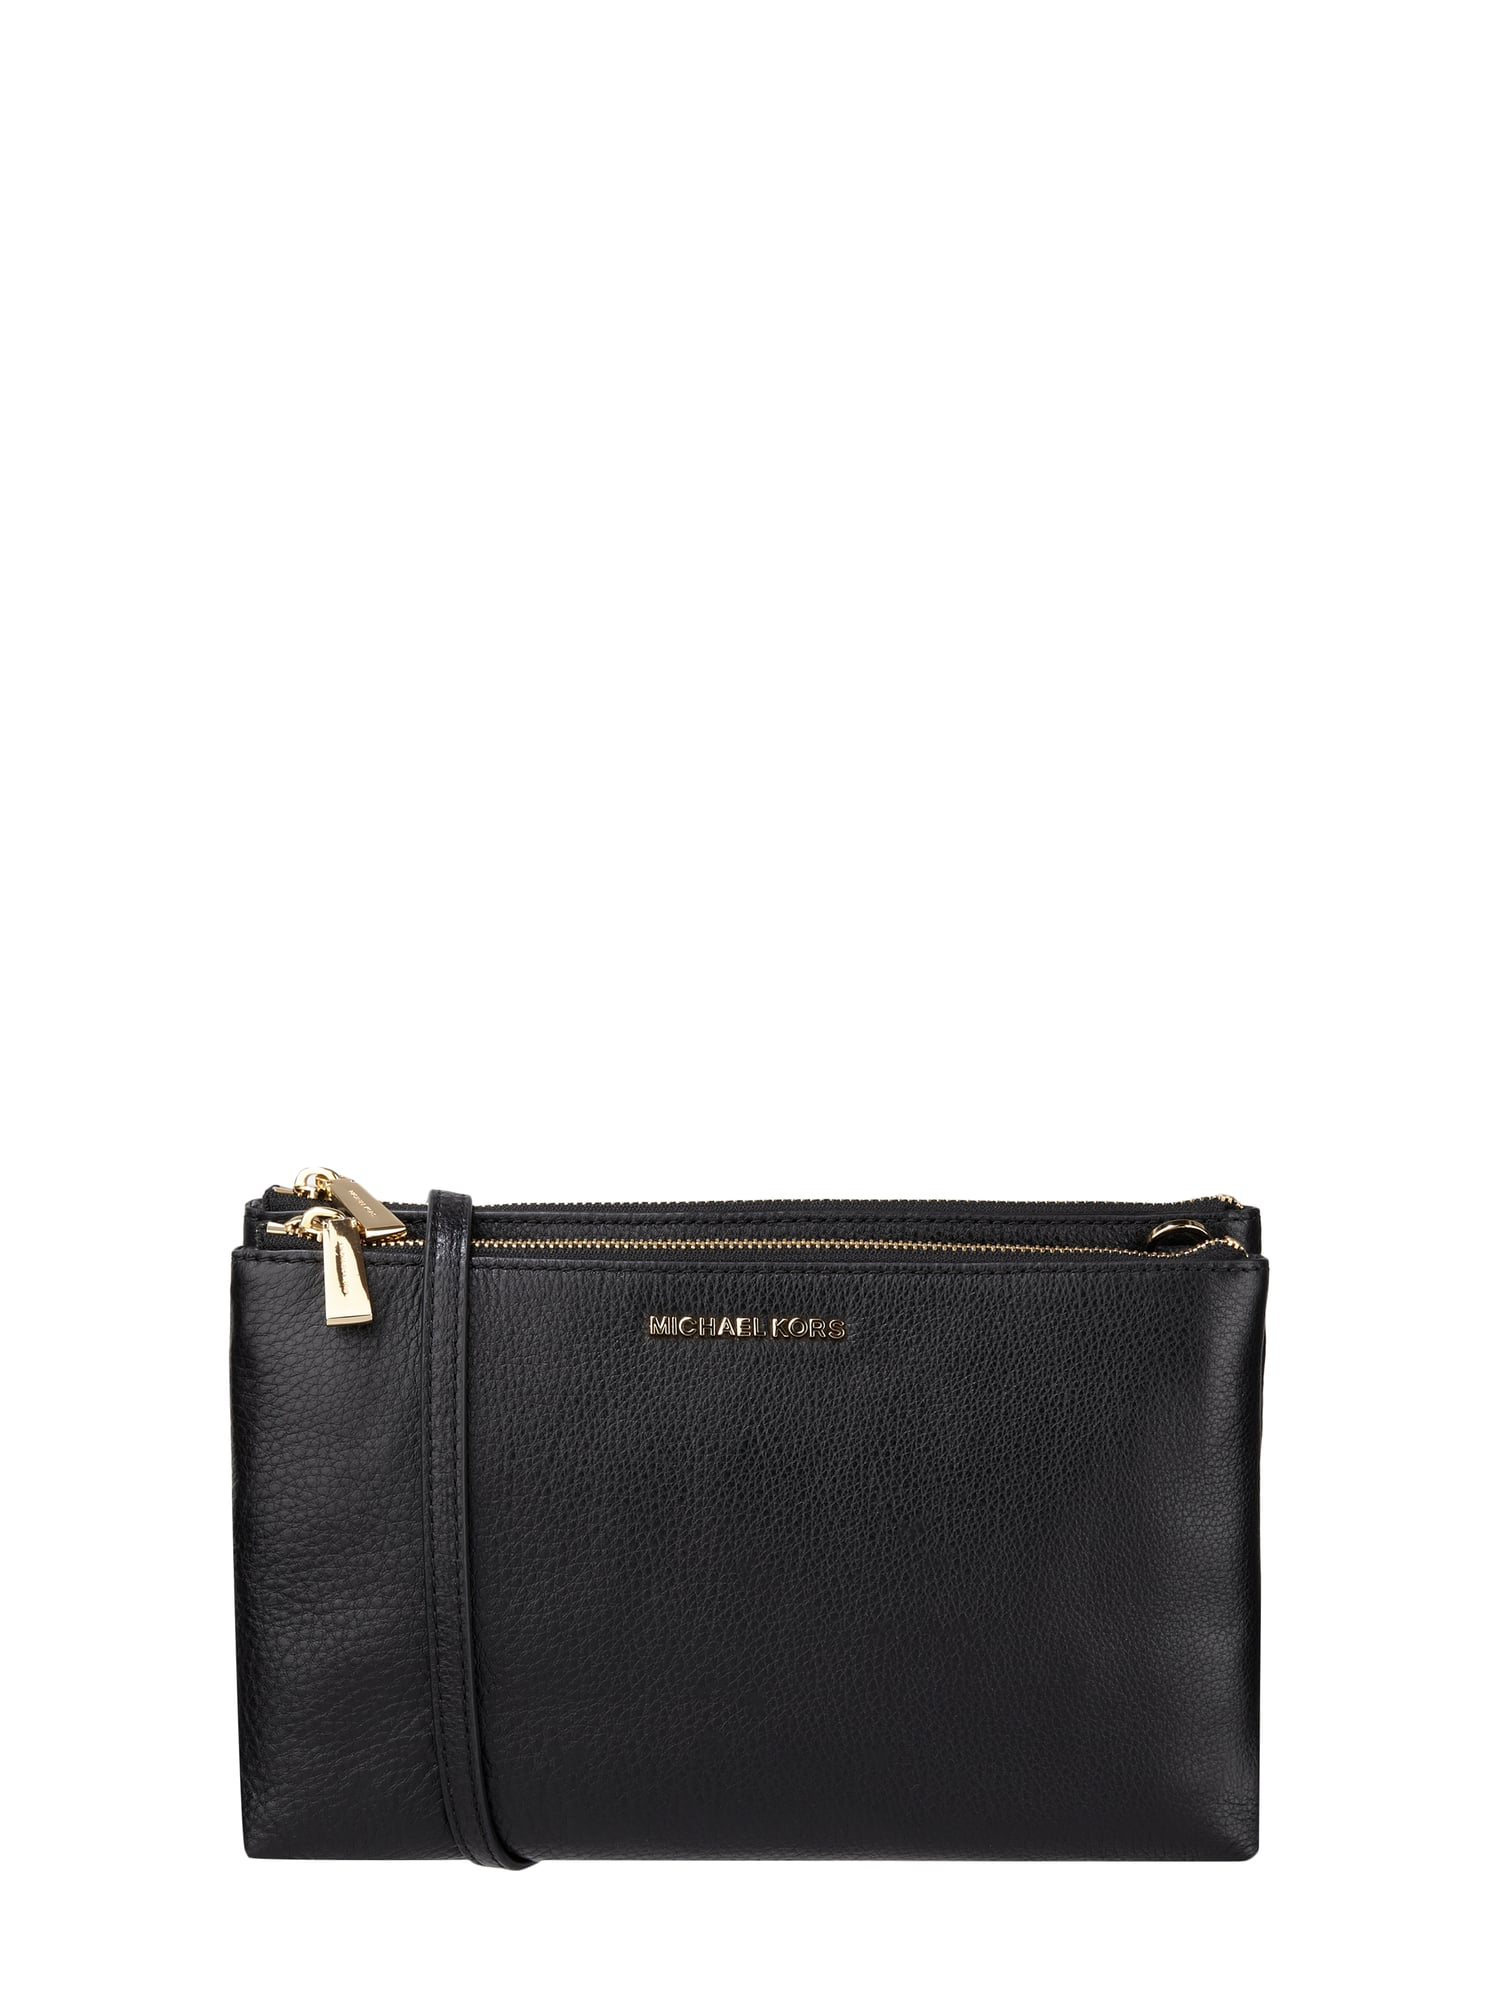 michael michael kors crossbody bag mit zwei rei verschlussf chern in grau schwarz online. Black Bedroom Furniture Sets. Home Design Ideas